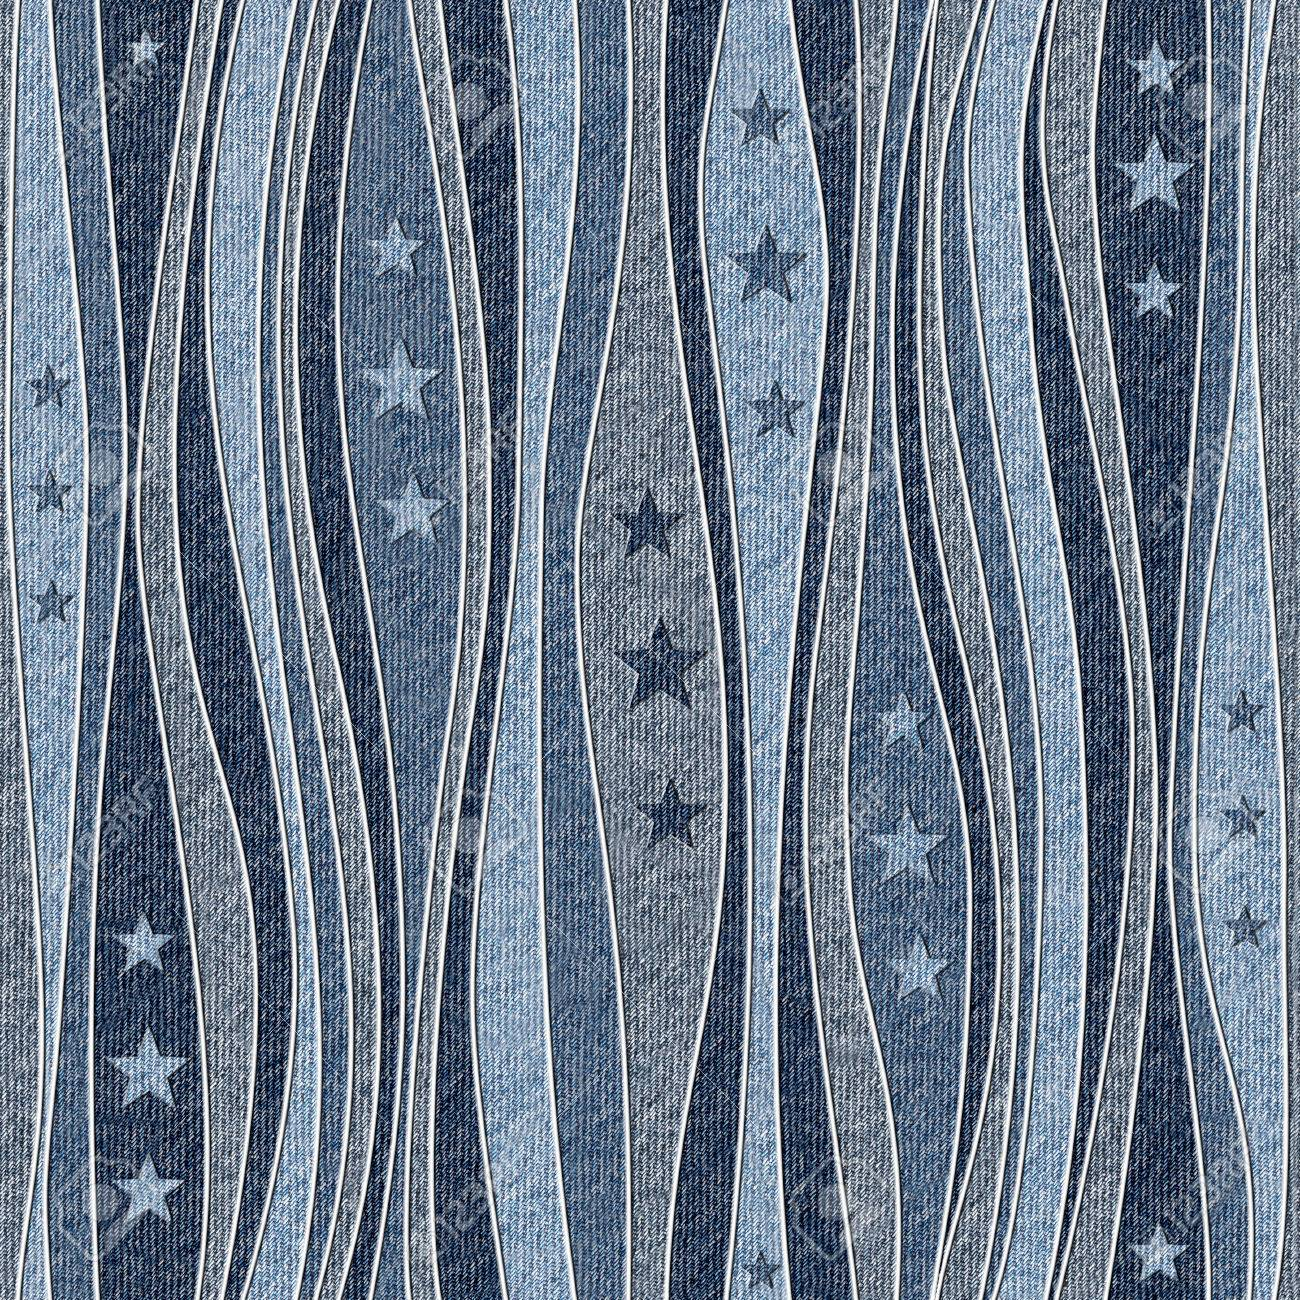 Abstract paneling pattern - Stars seamless pattern - blue jeans textile - 40378251